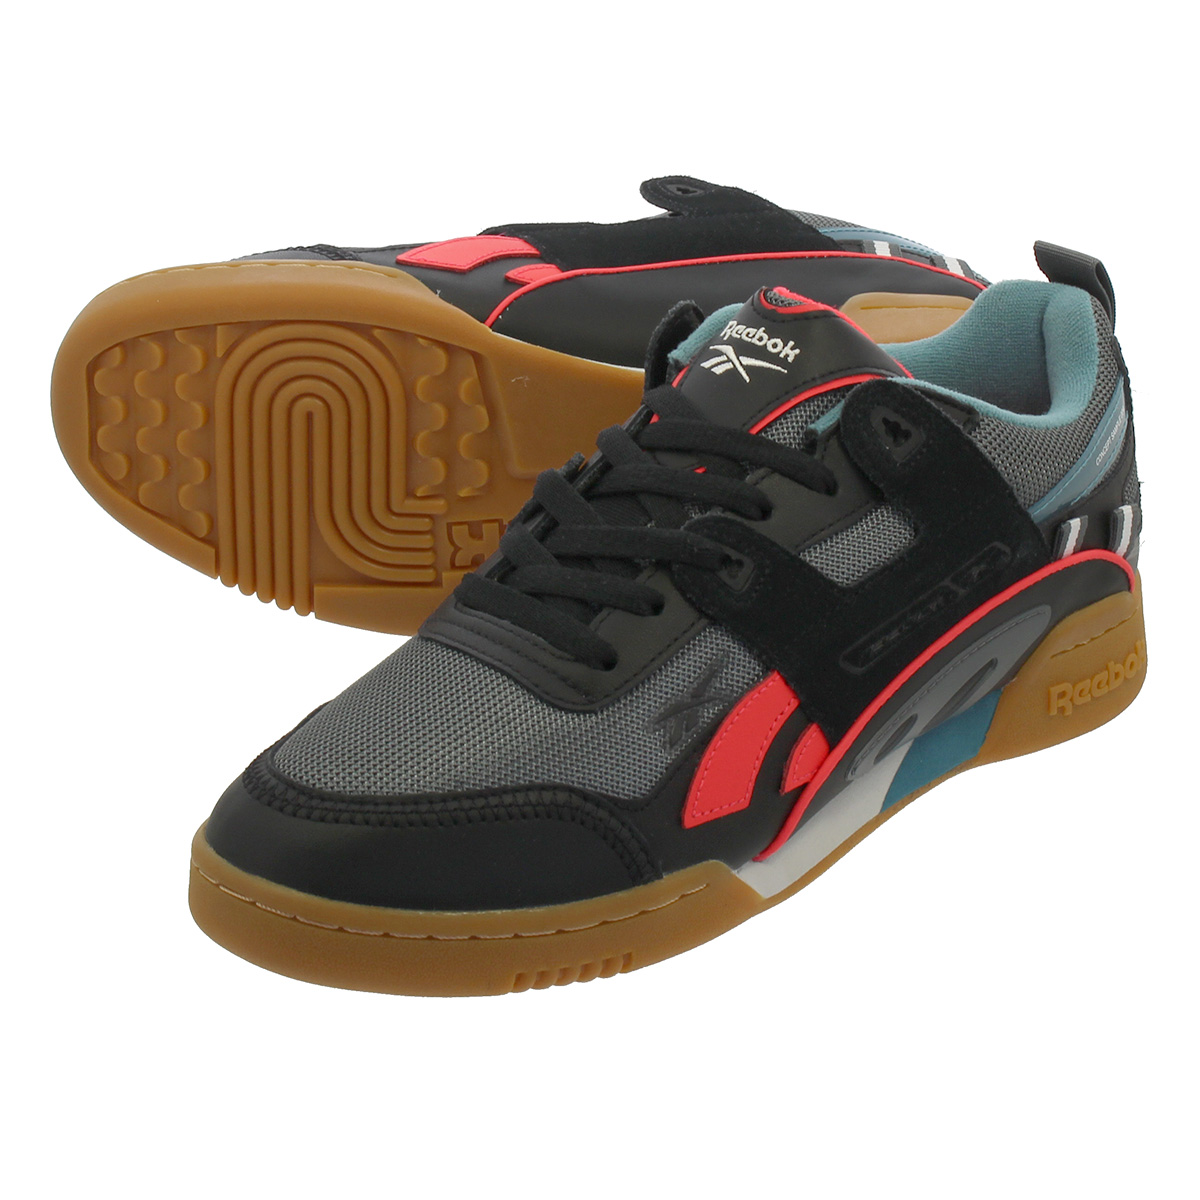 free delivery great variety styles quite nice Reebok WORKOUT PLUS ATI 90'S Reebok practice game plus Orr terthe icon 90'S  BLACK/ALLOY/NEON RED/MINERAL MIST dv6282